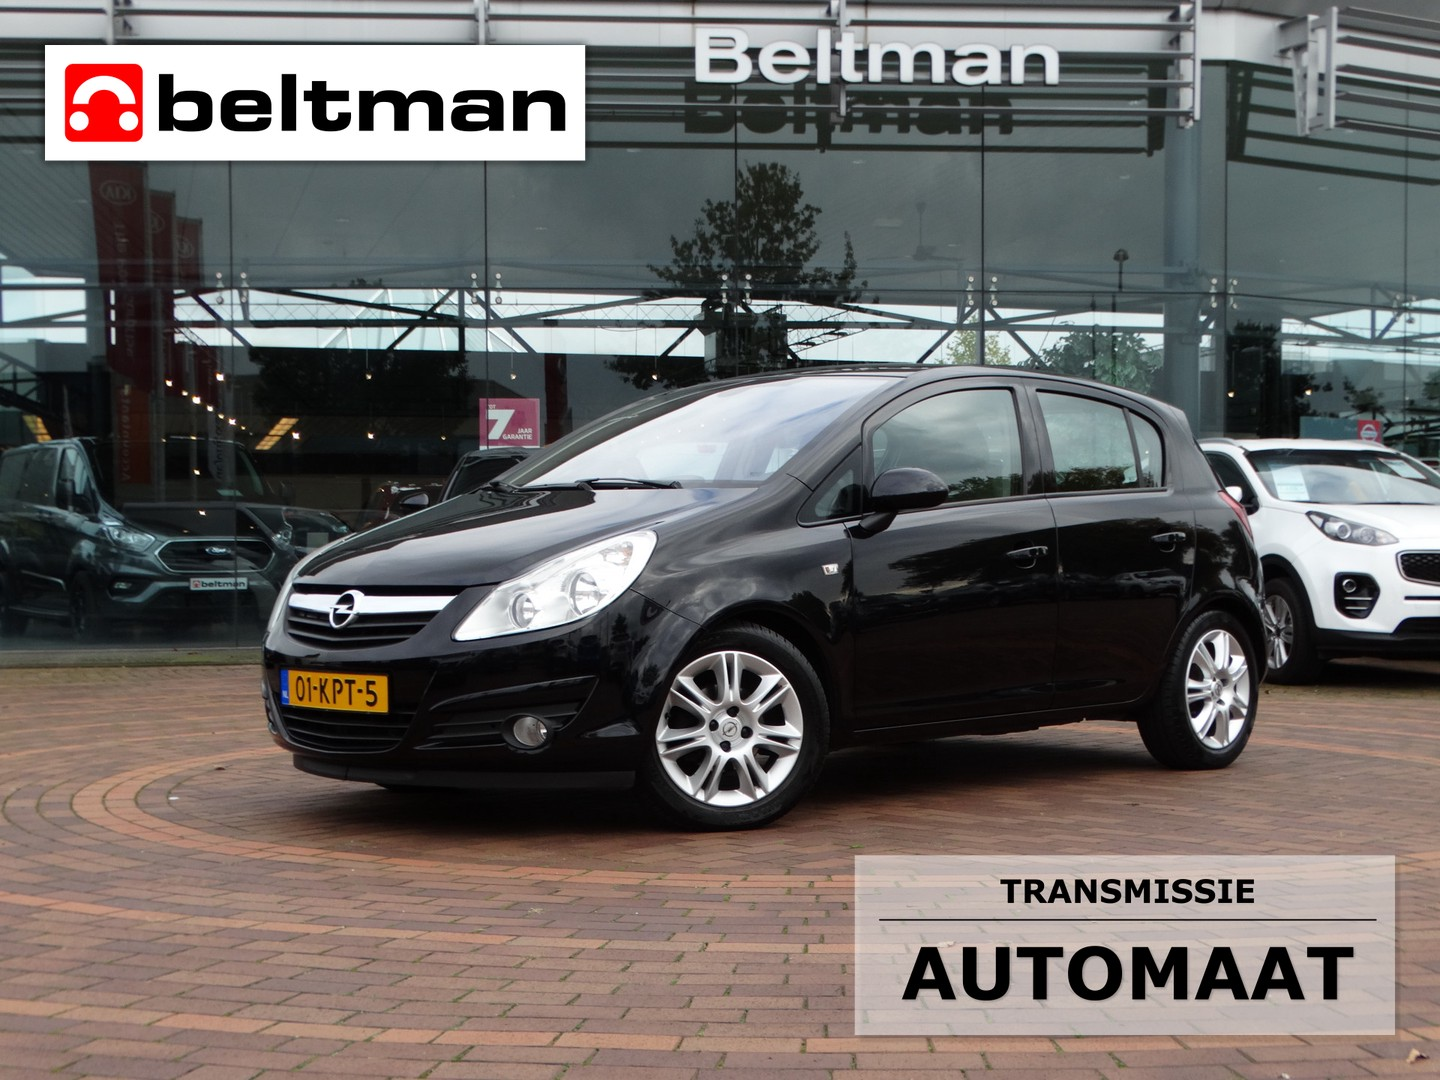 Opel Corsa 1.4-16v cosmo automaat